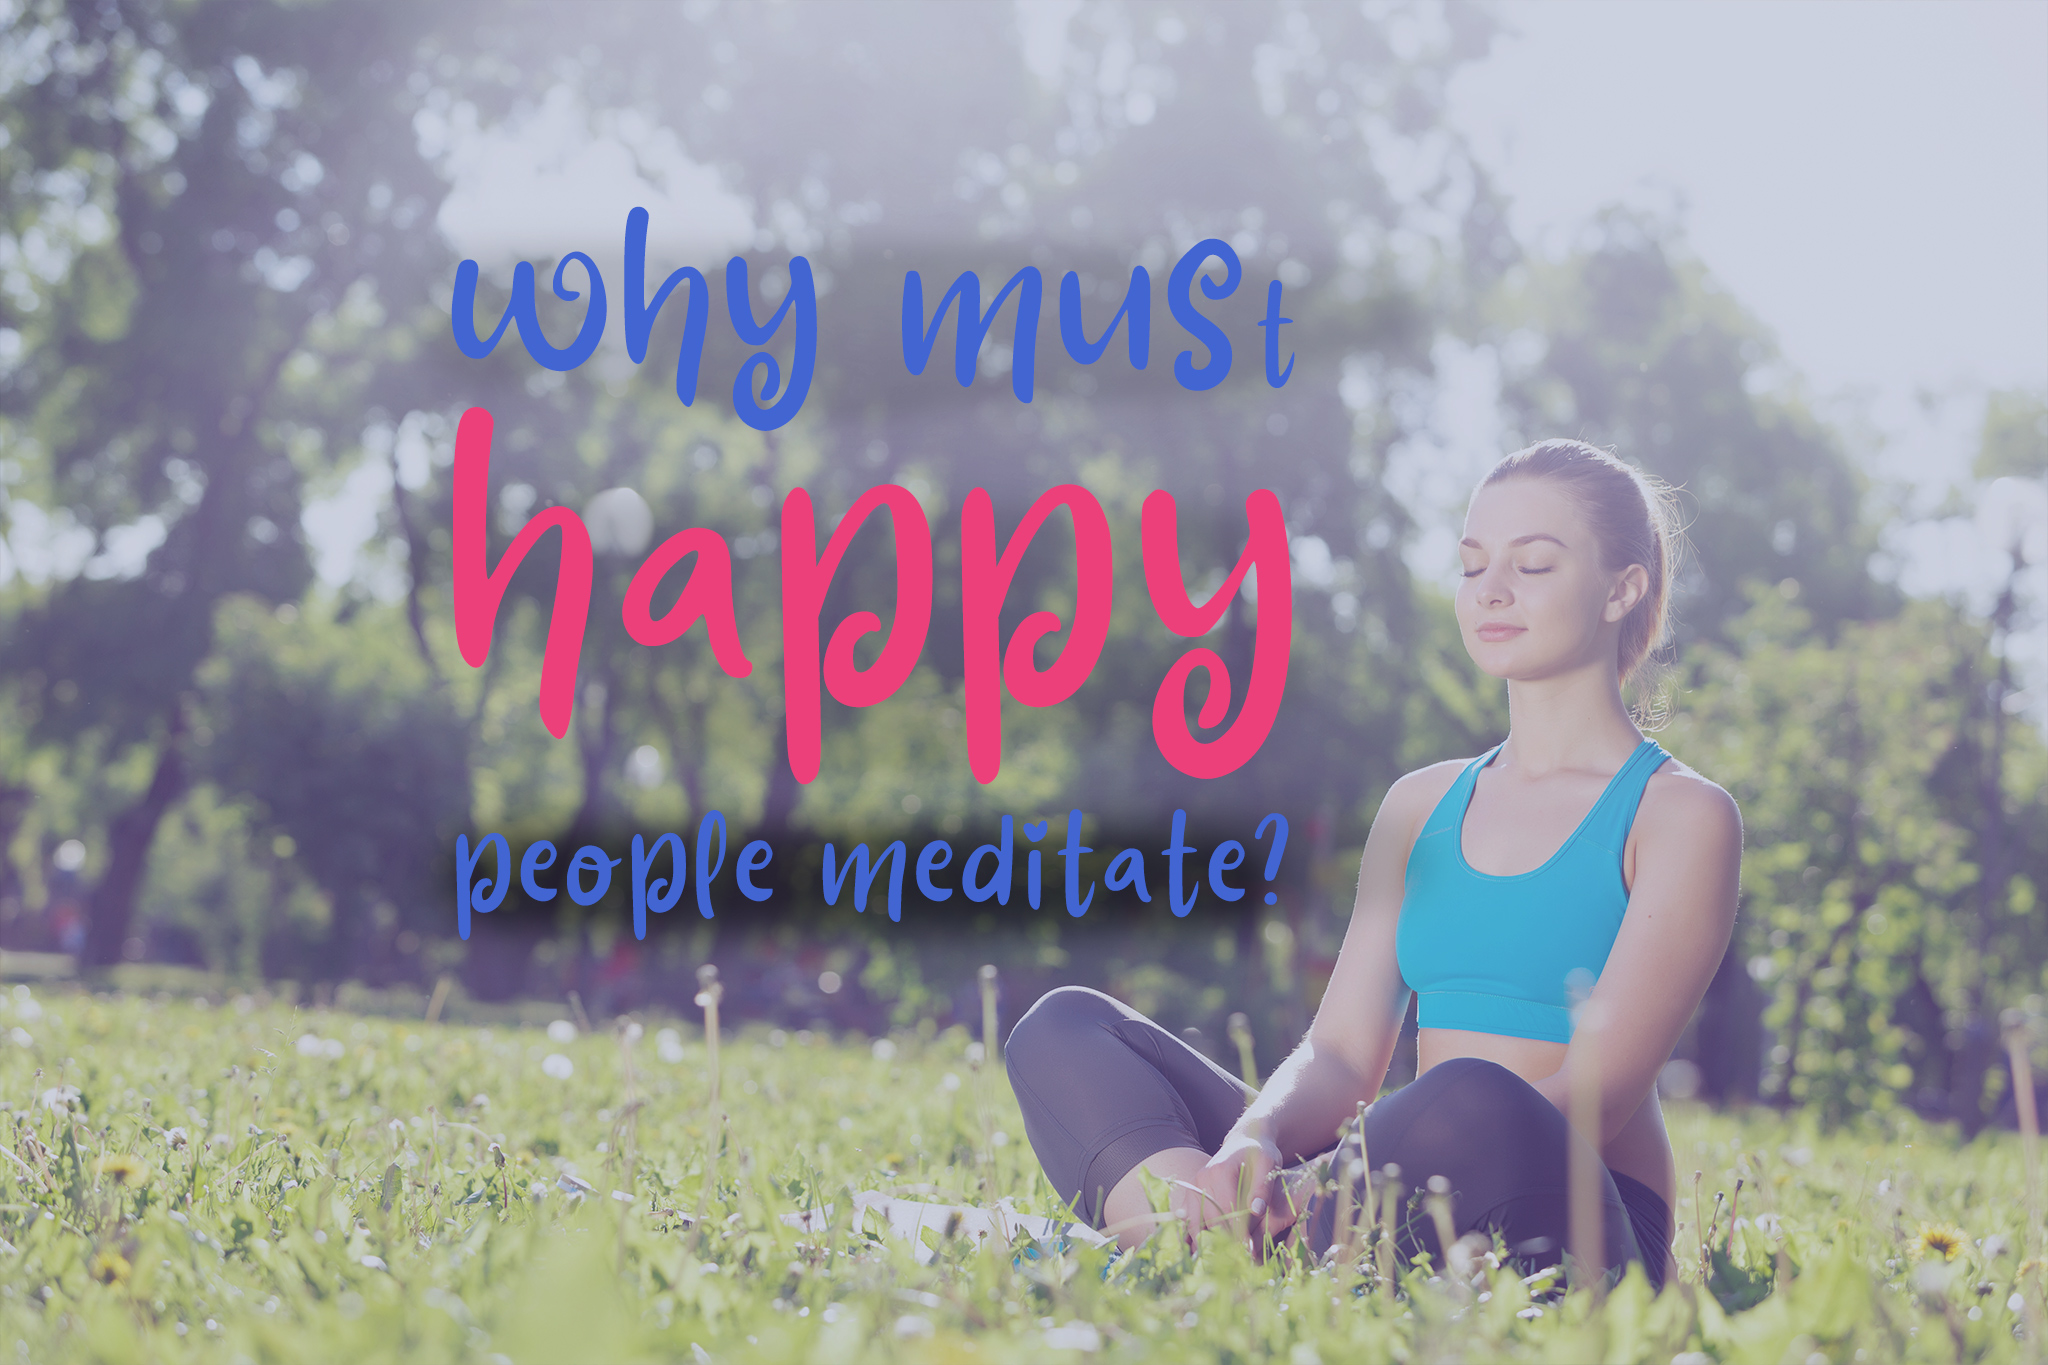 If meditation makes people happy, why must happy people meditate?